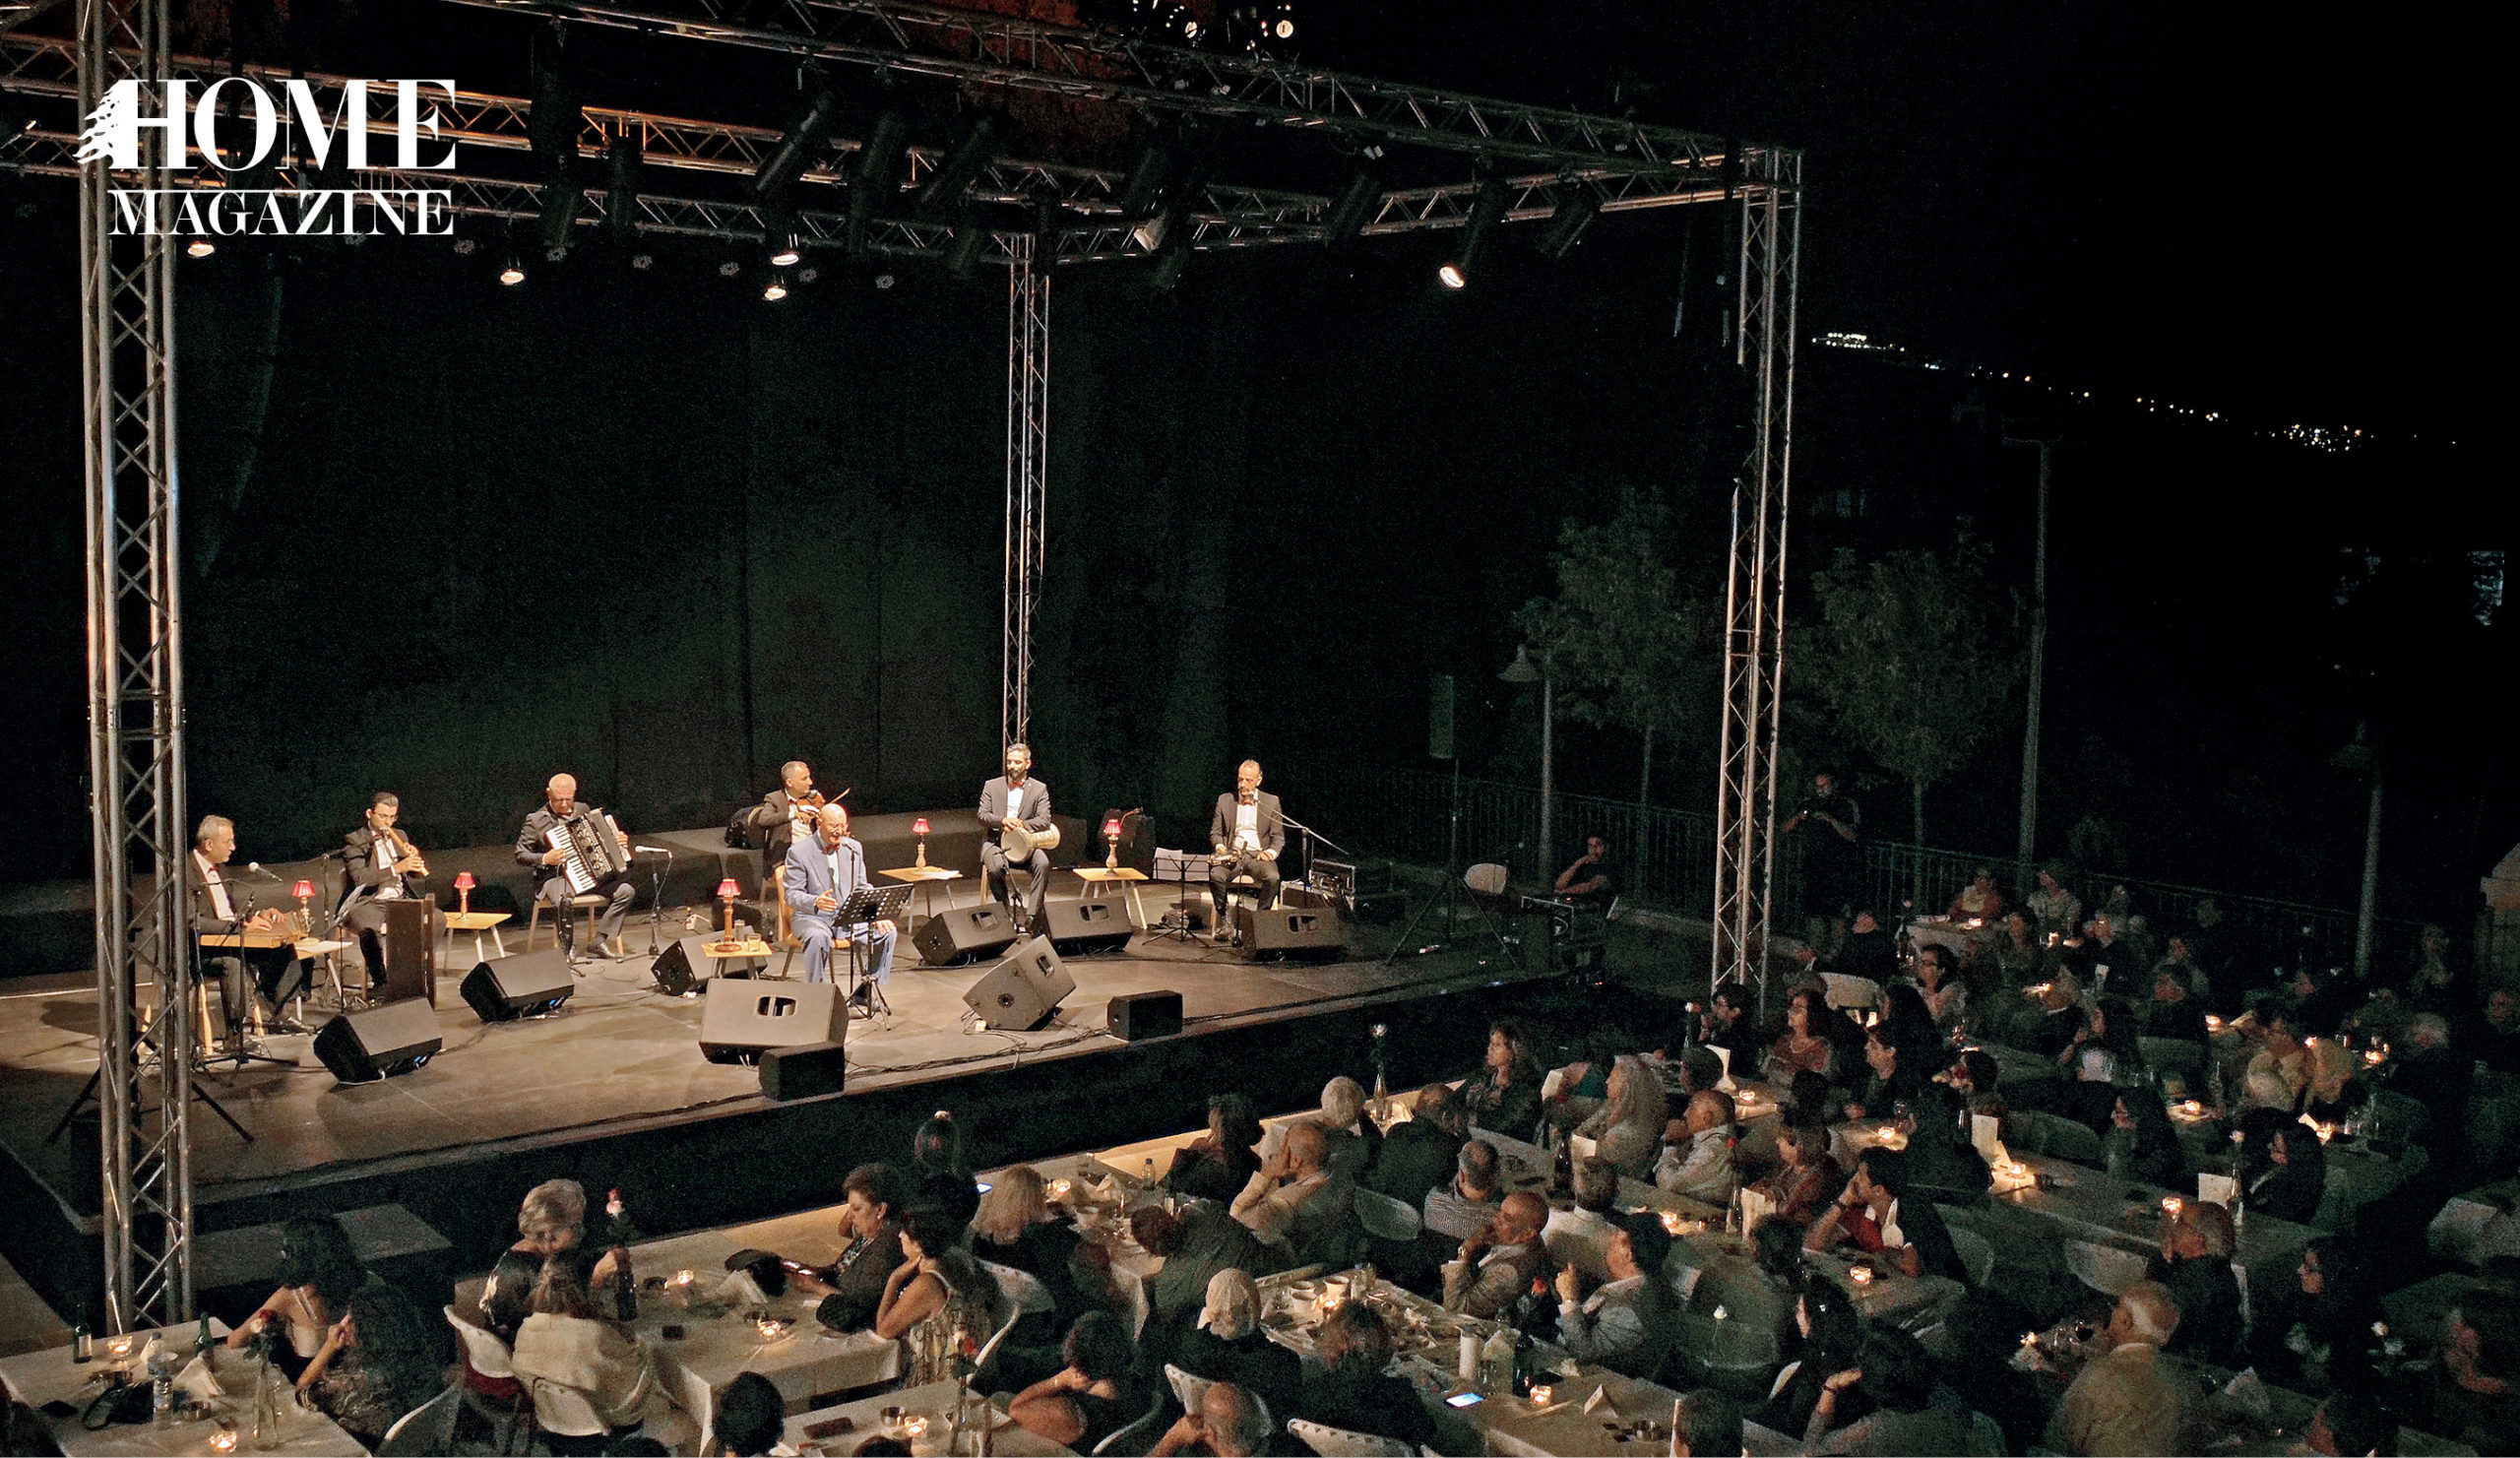 Band performing on stage at night with seated crowd